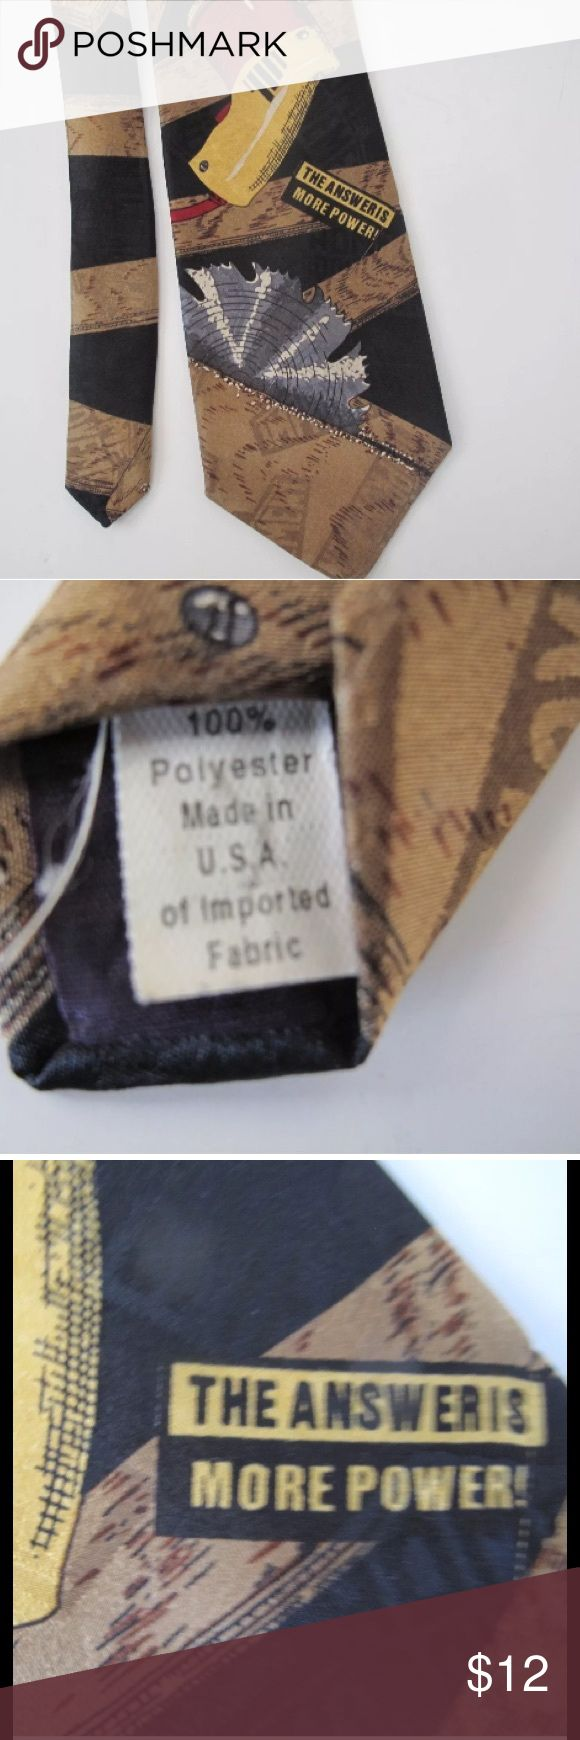 """Home Improvement TV Show Novelty Necktie Home Improvement Television Series Novely Necktie Made in USA 100% Polyester Brown, Black and Tan Features Drill and Saw Quote: """" The Answer is More Power!"""" 57 inches long, 3.75 inches wide Home Improvement Accessories Ties"""